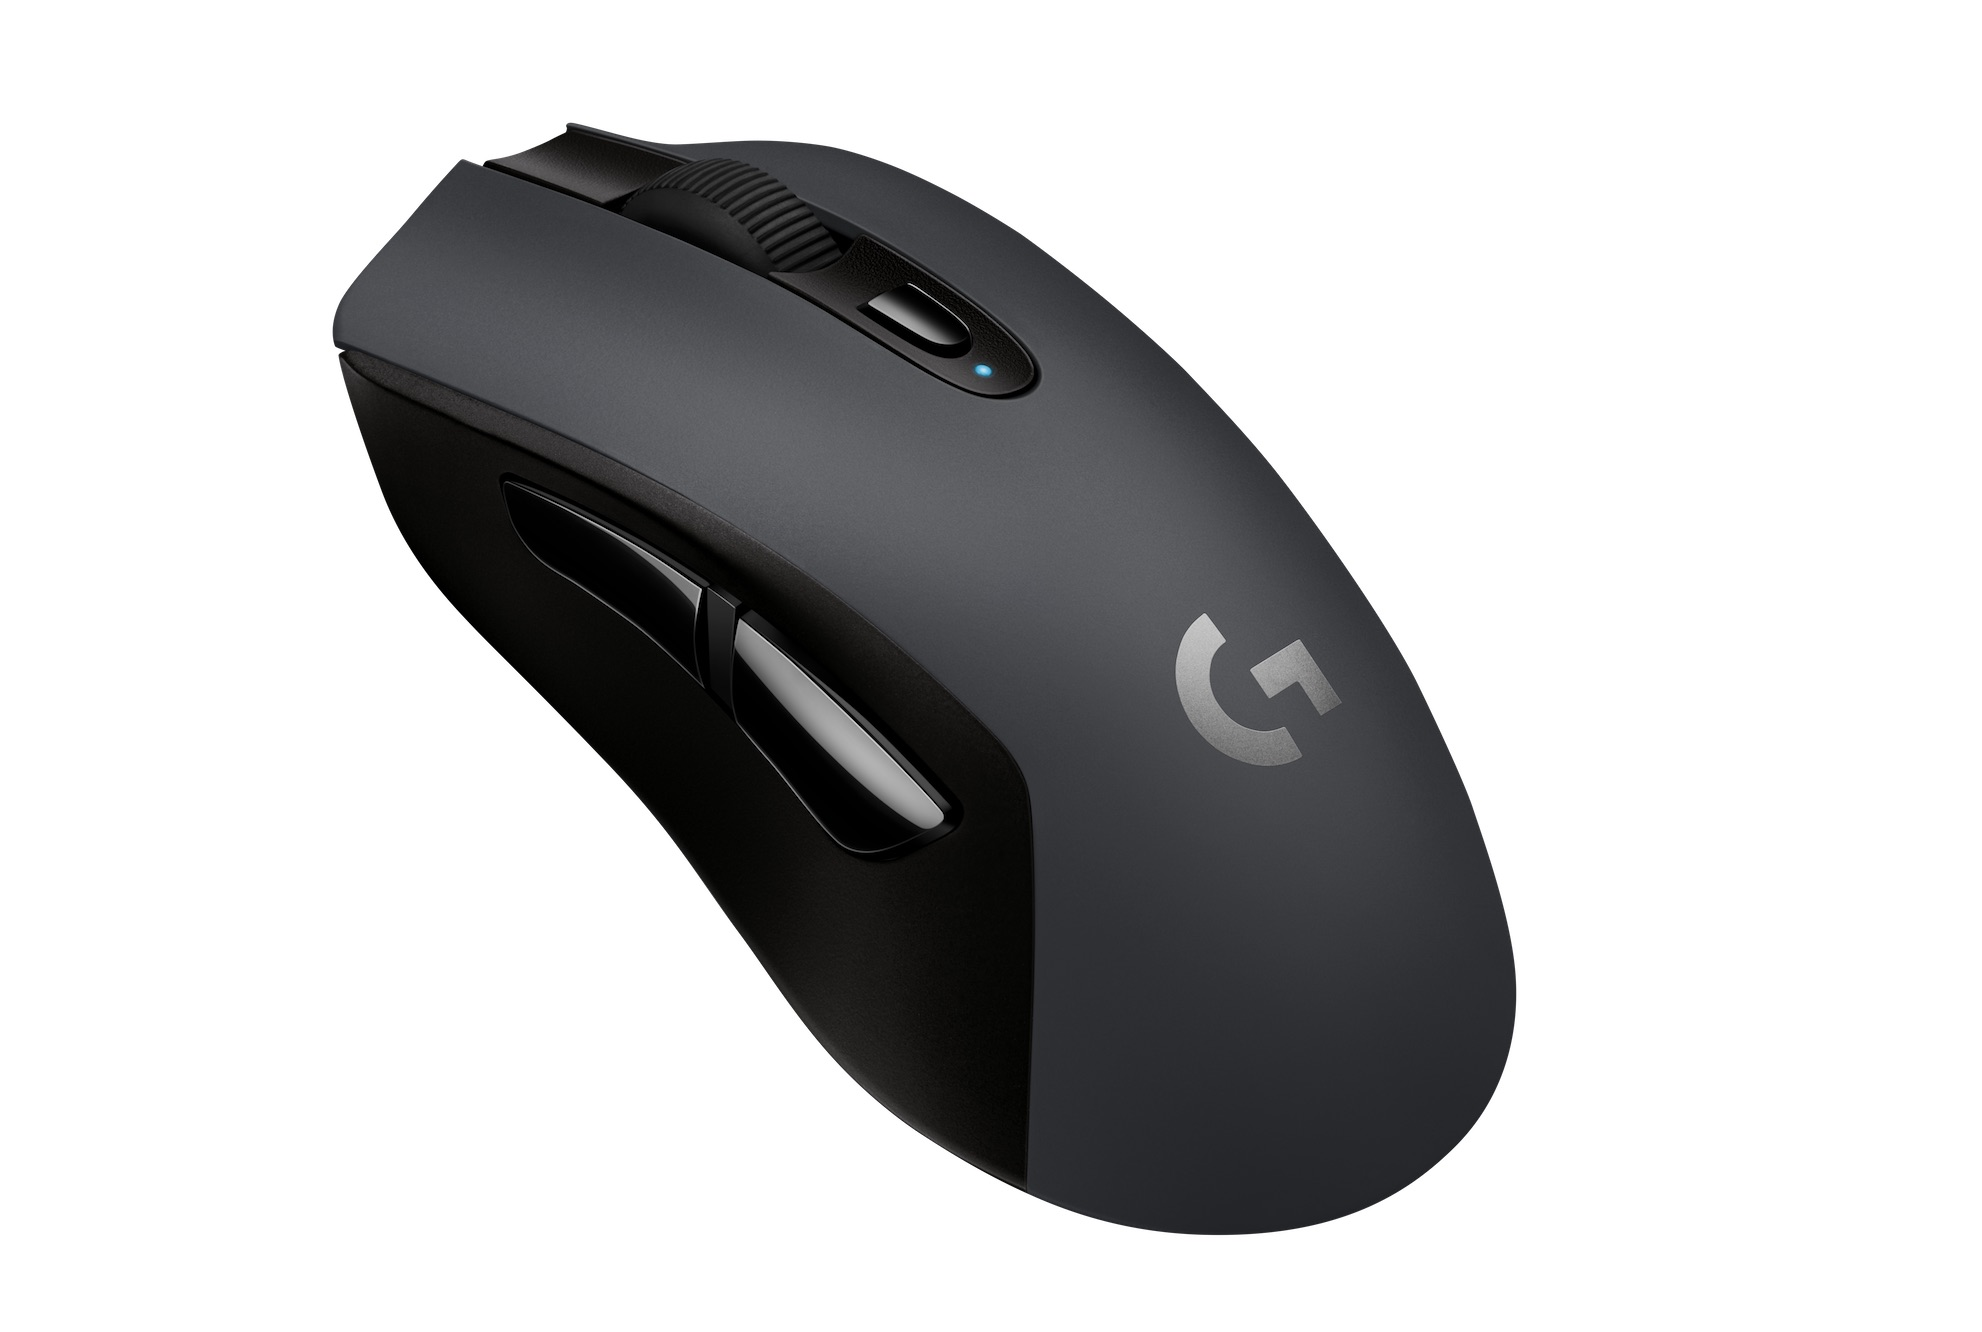 New Logitech Wireless Mechanical Keyboard & Gaming Mouse Unveiled